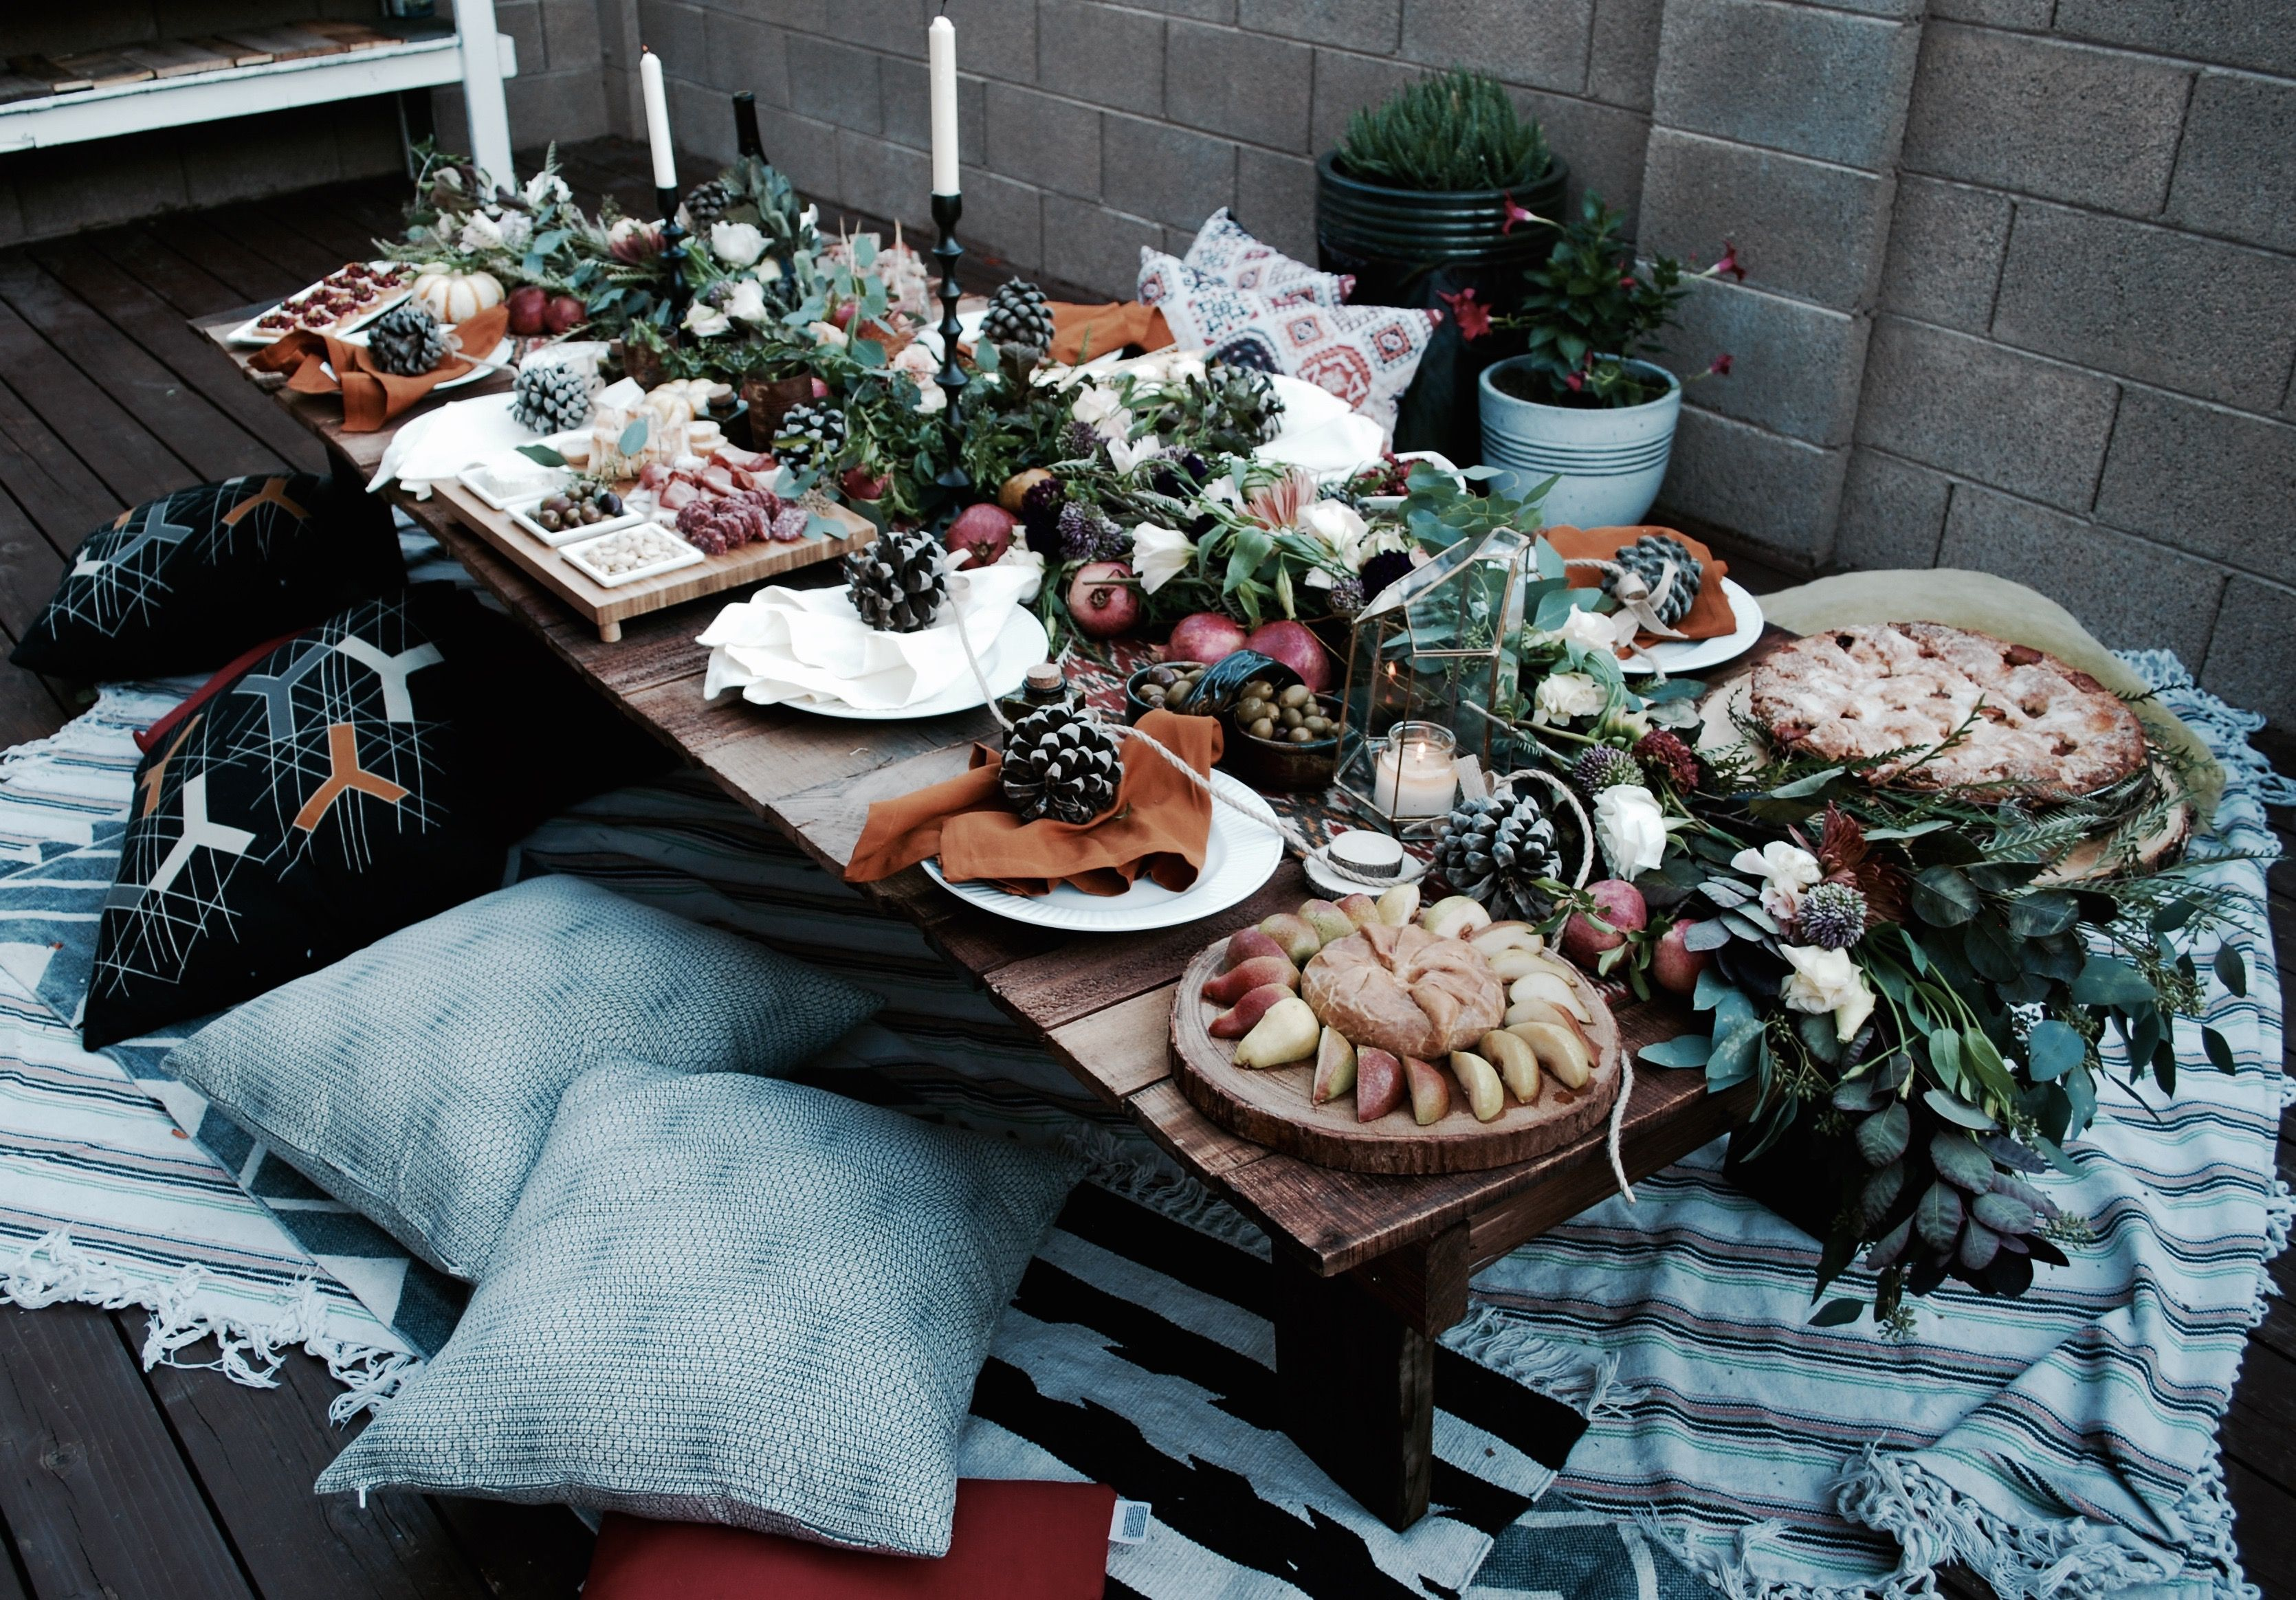 #backyardparty #dinnerparty #fall #fallparty #thefloraltheory #celebrate #grub